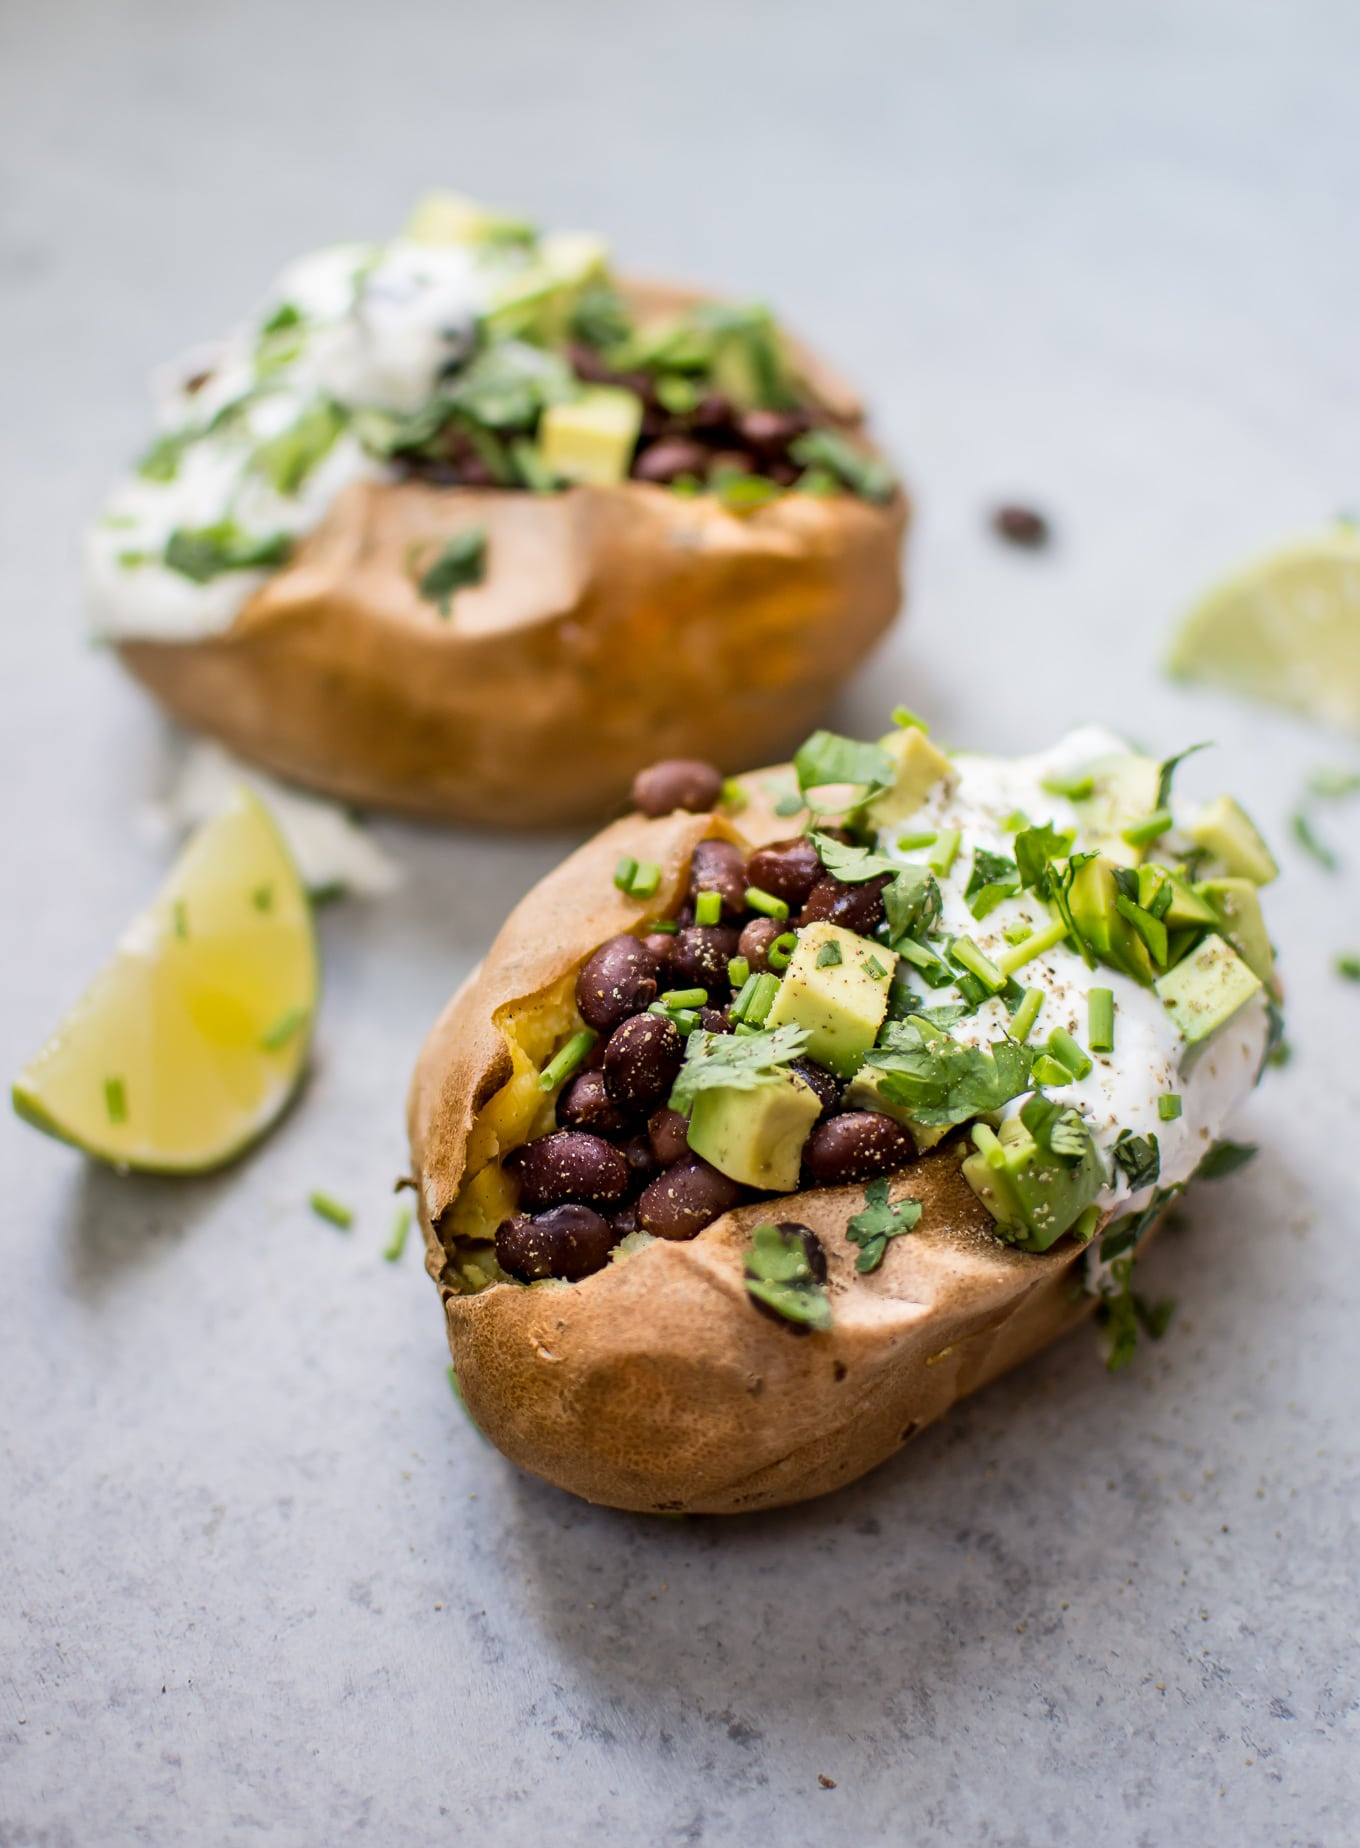 These healthy stuffed sweet potatoes make a fabulous light meal or side! Black beans with a quick lime dressing, Greek yogurt, avocado, and chives top these flavor-packed bundles of deliciousness.